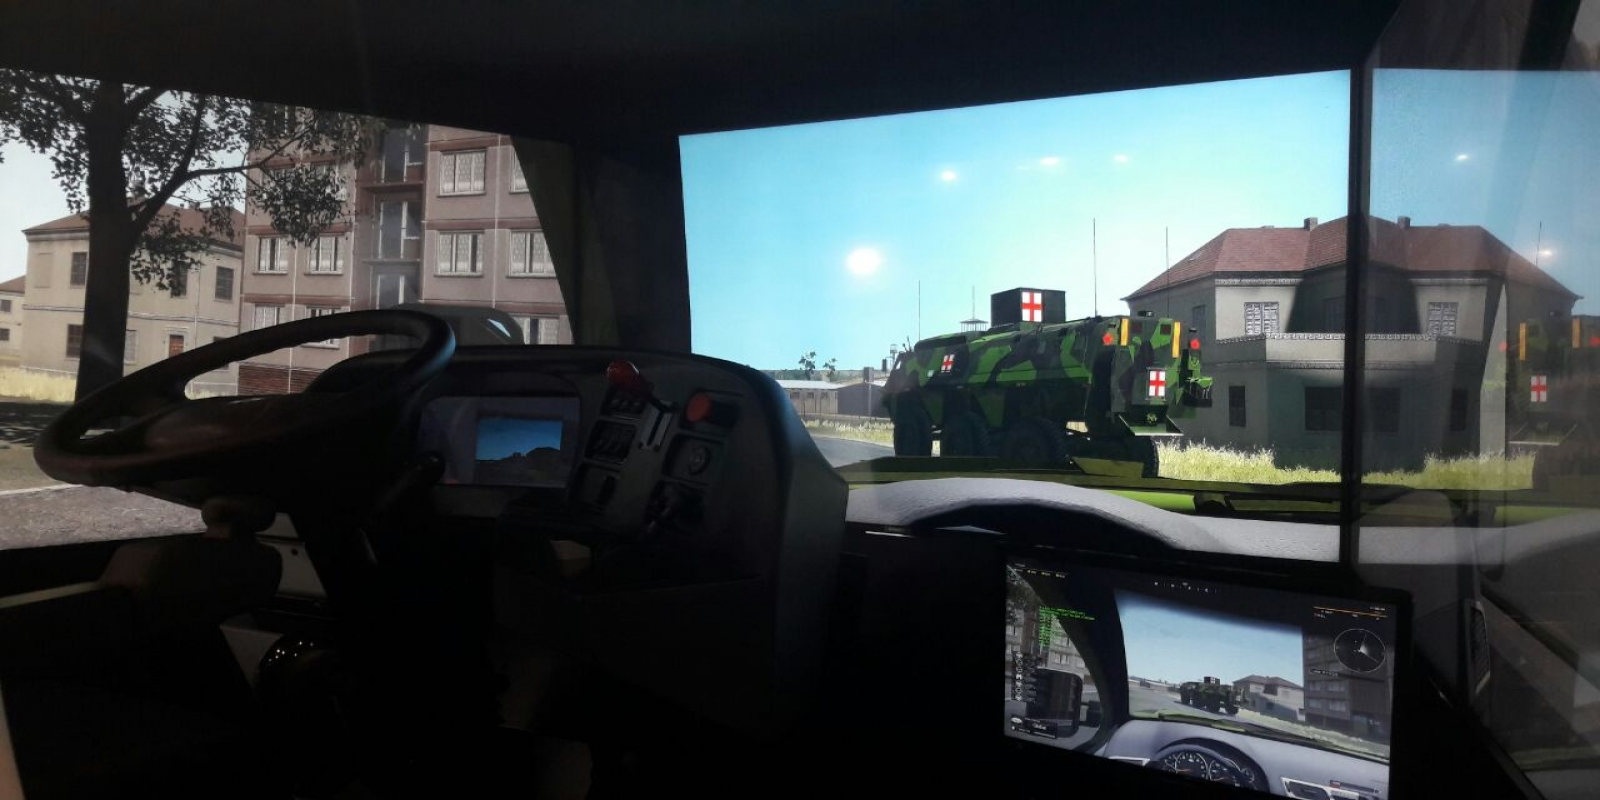 Trainees see the VBS3 virtual environment on a 200 degree viewing angle